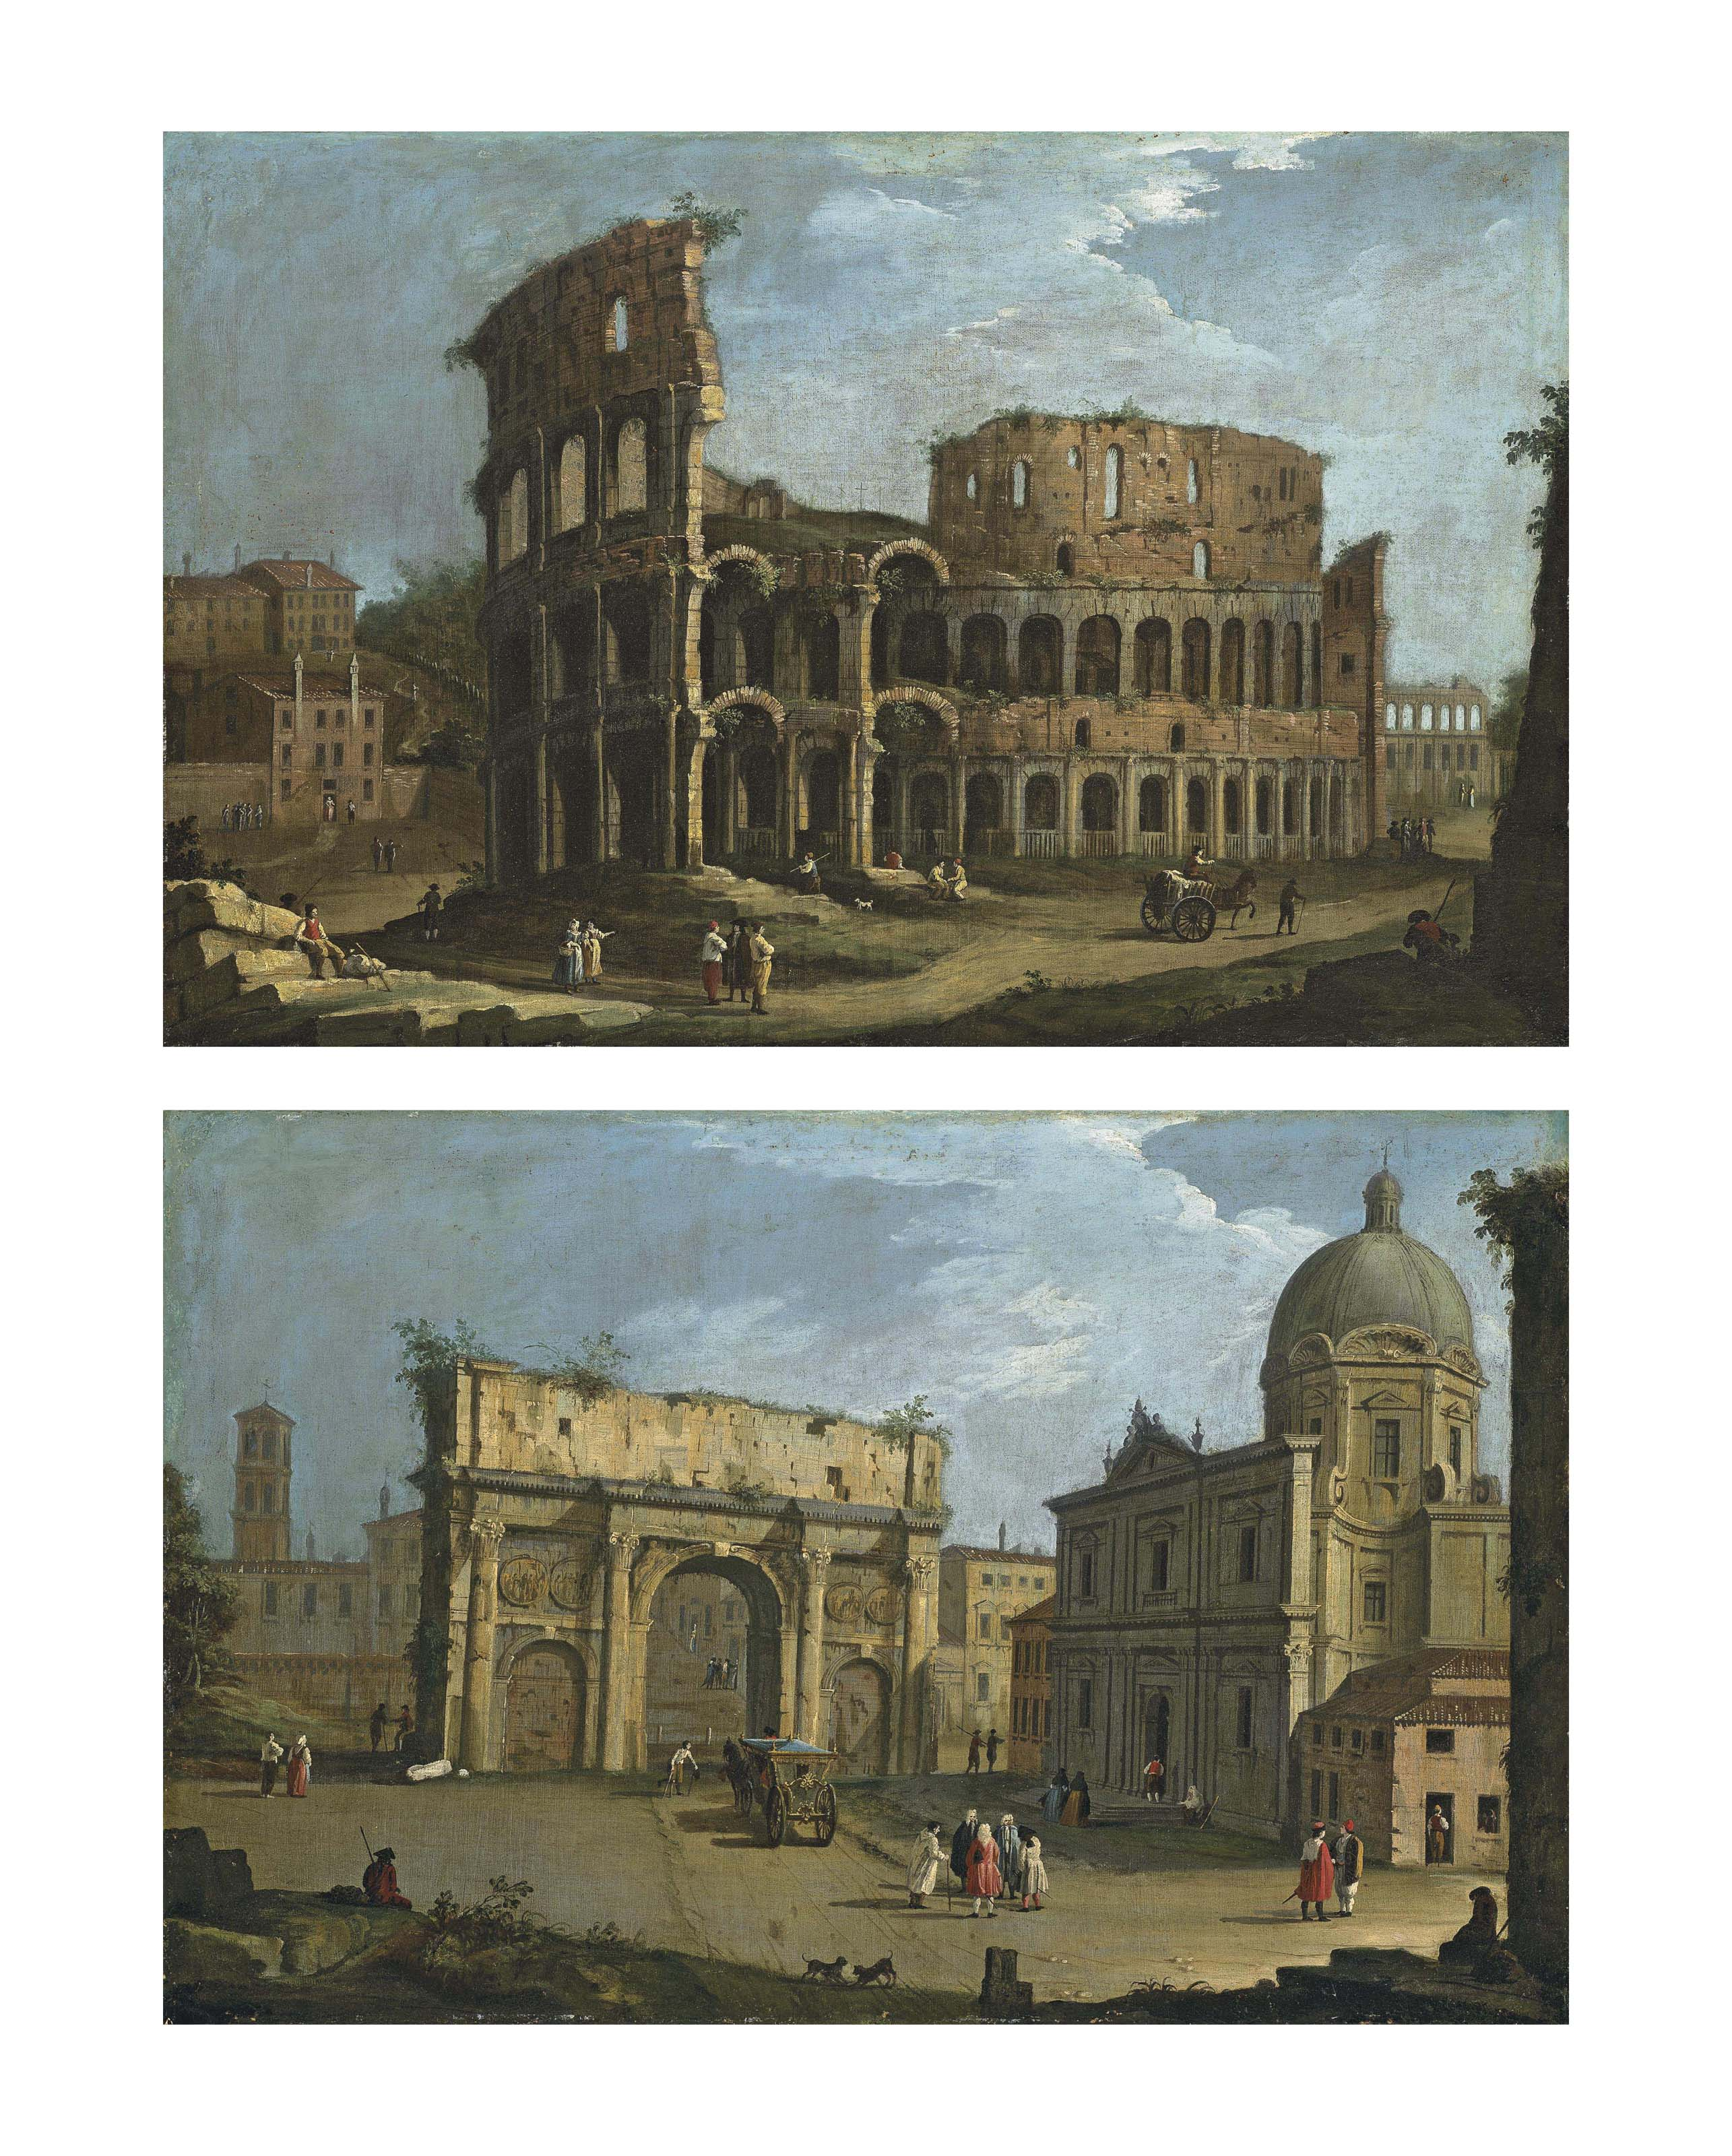 Views of Rome: The Colosseum; and The Arch of Septimius Severus, with the church of San Luca and Santa Martina